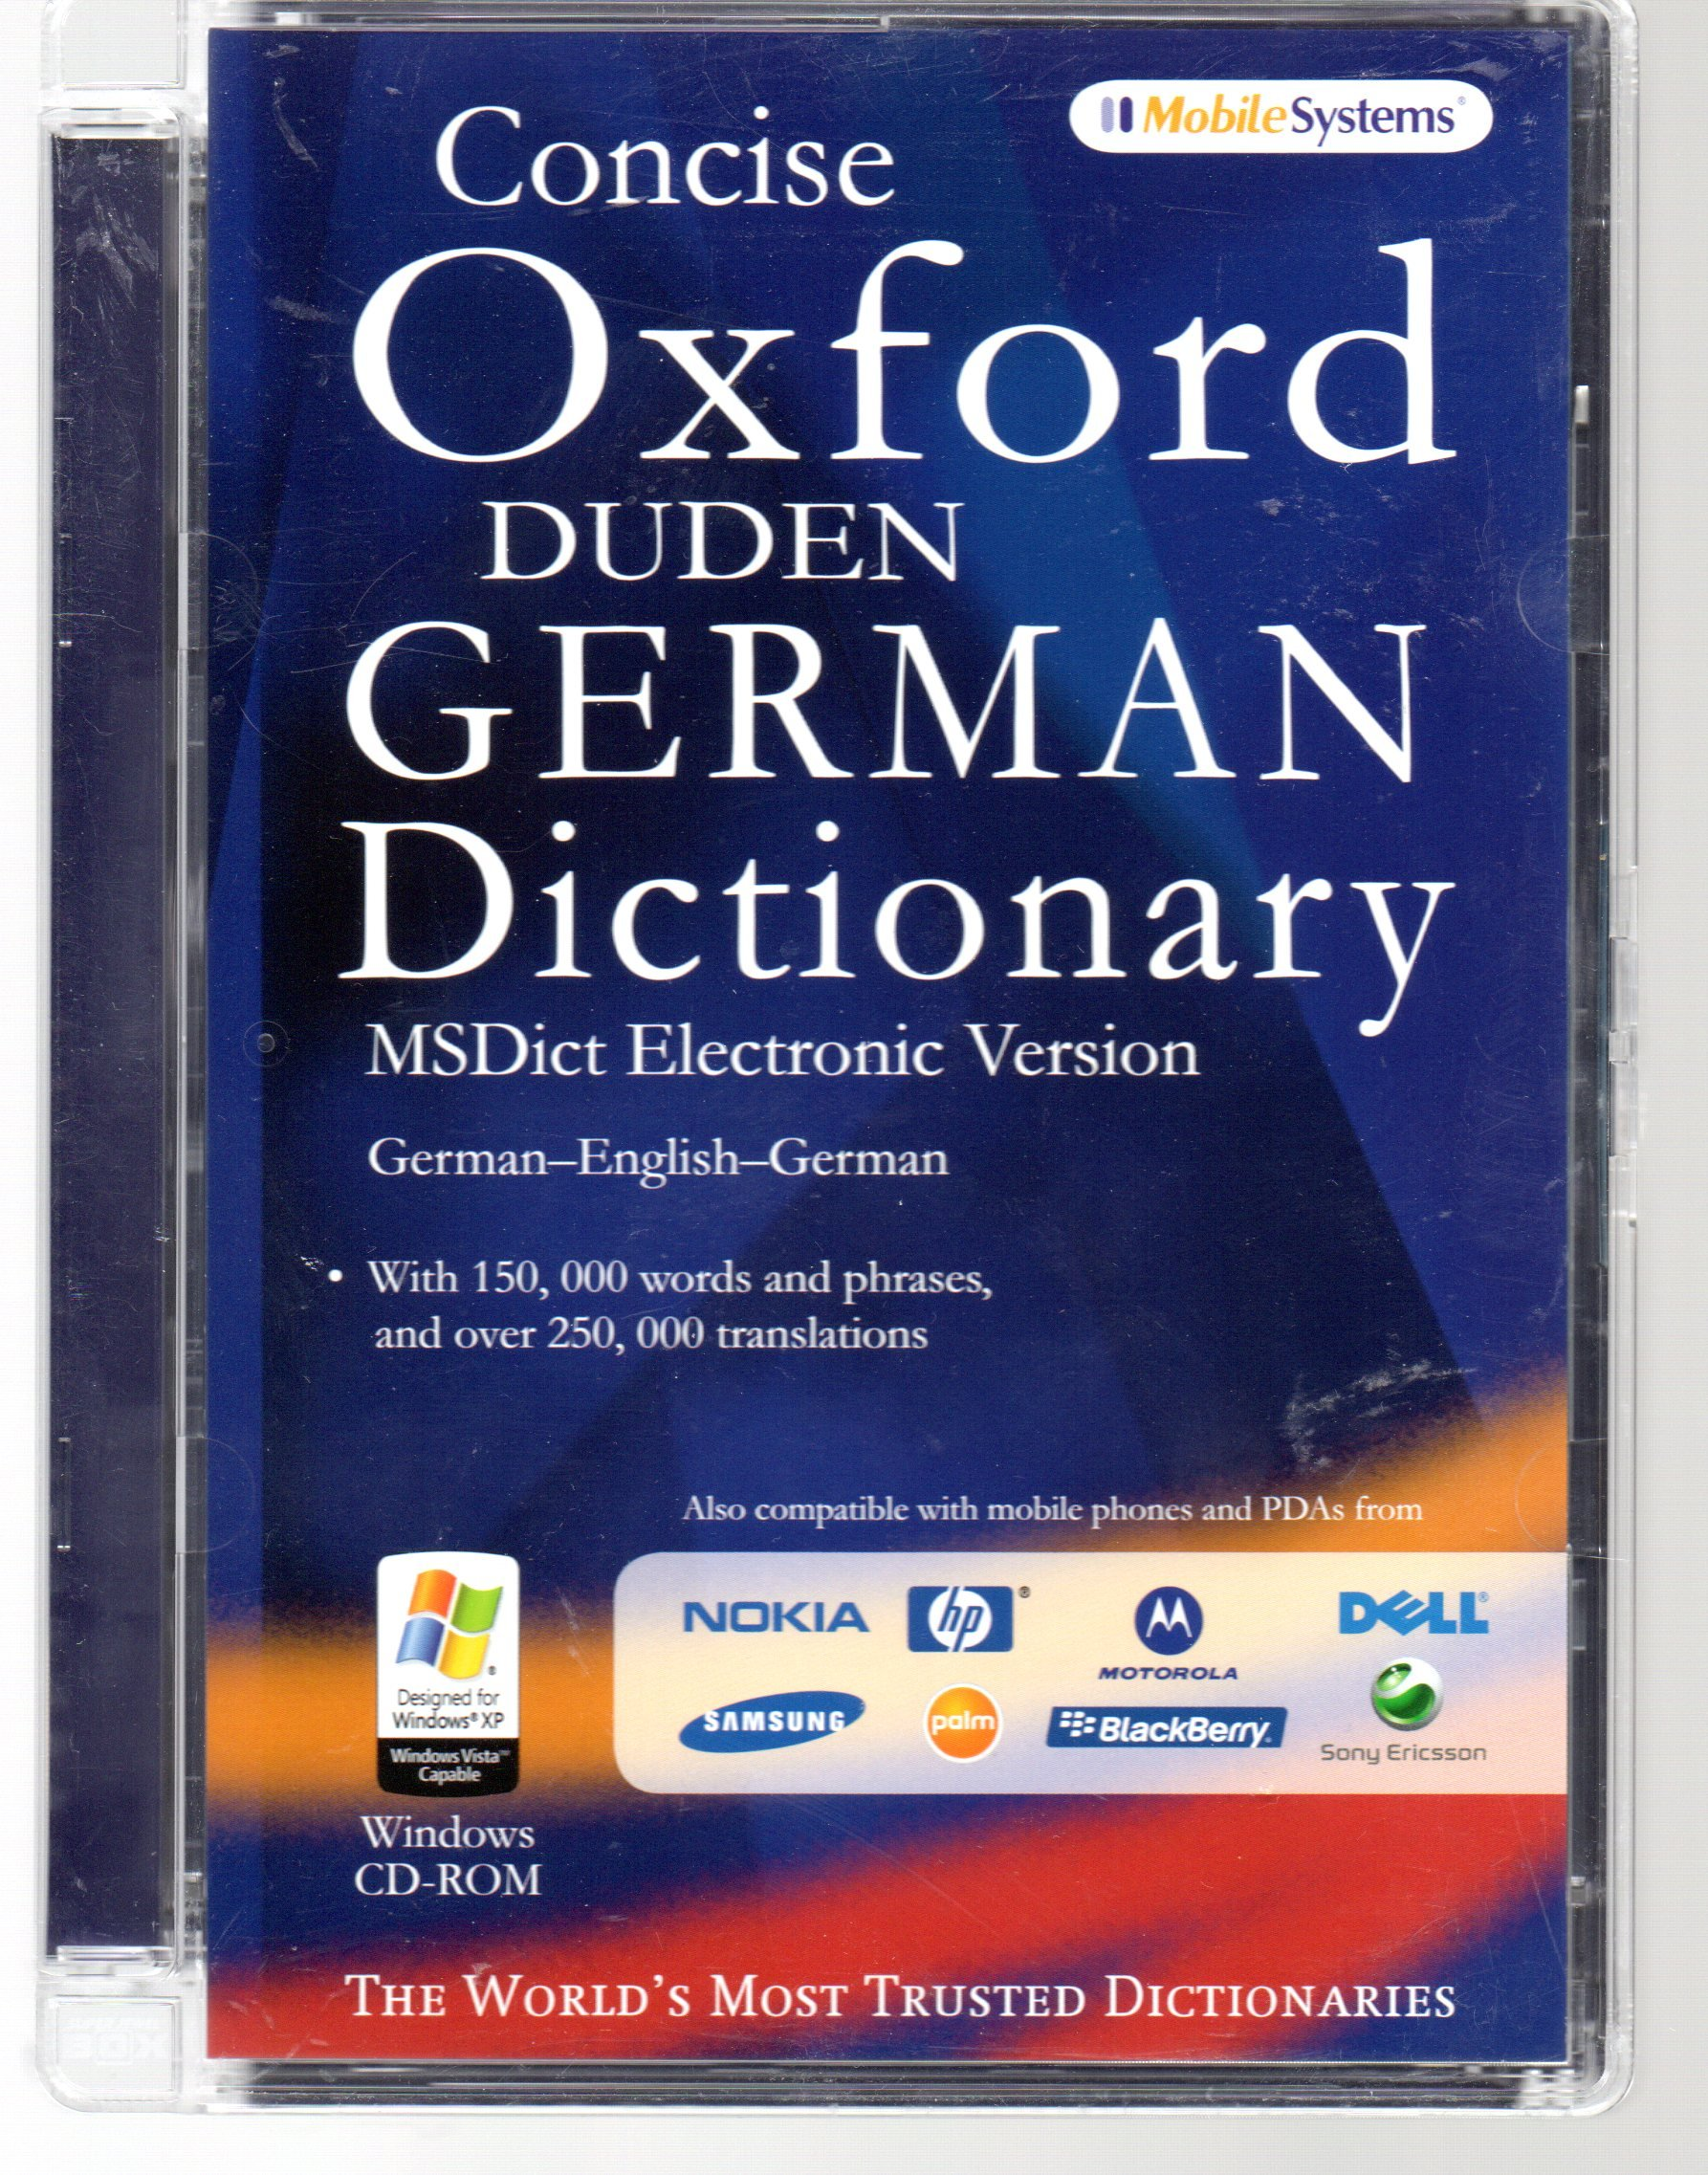 MSDict Concise Oxford Duden German Dictionary (Ms Dict Electronic Version):  Amazon.co.uk: 9780979745744: Books